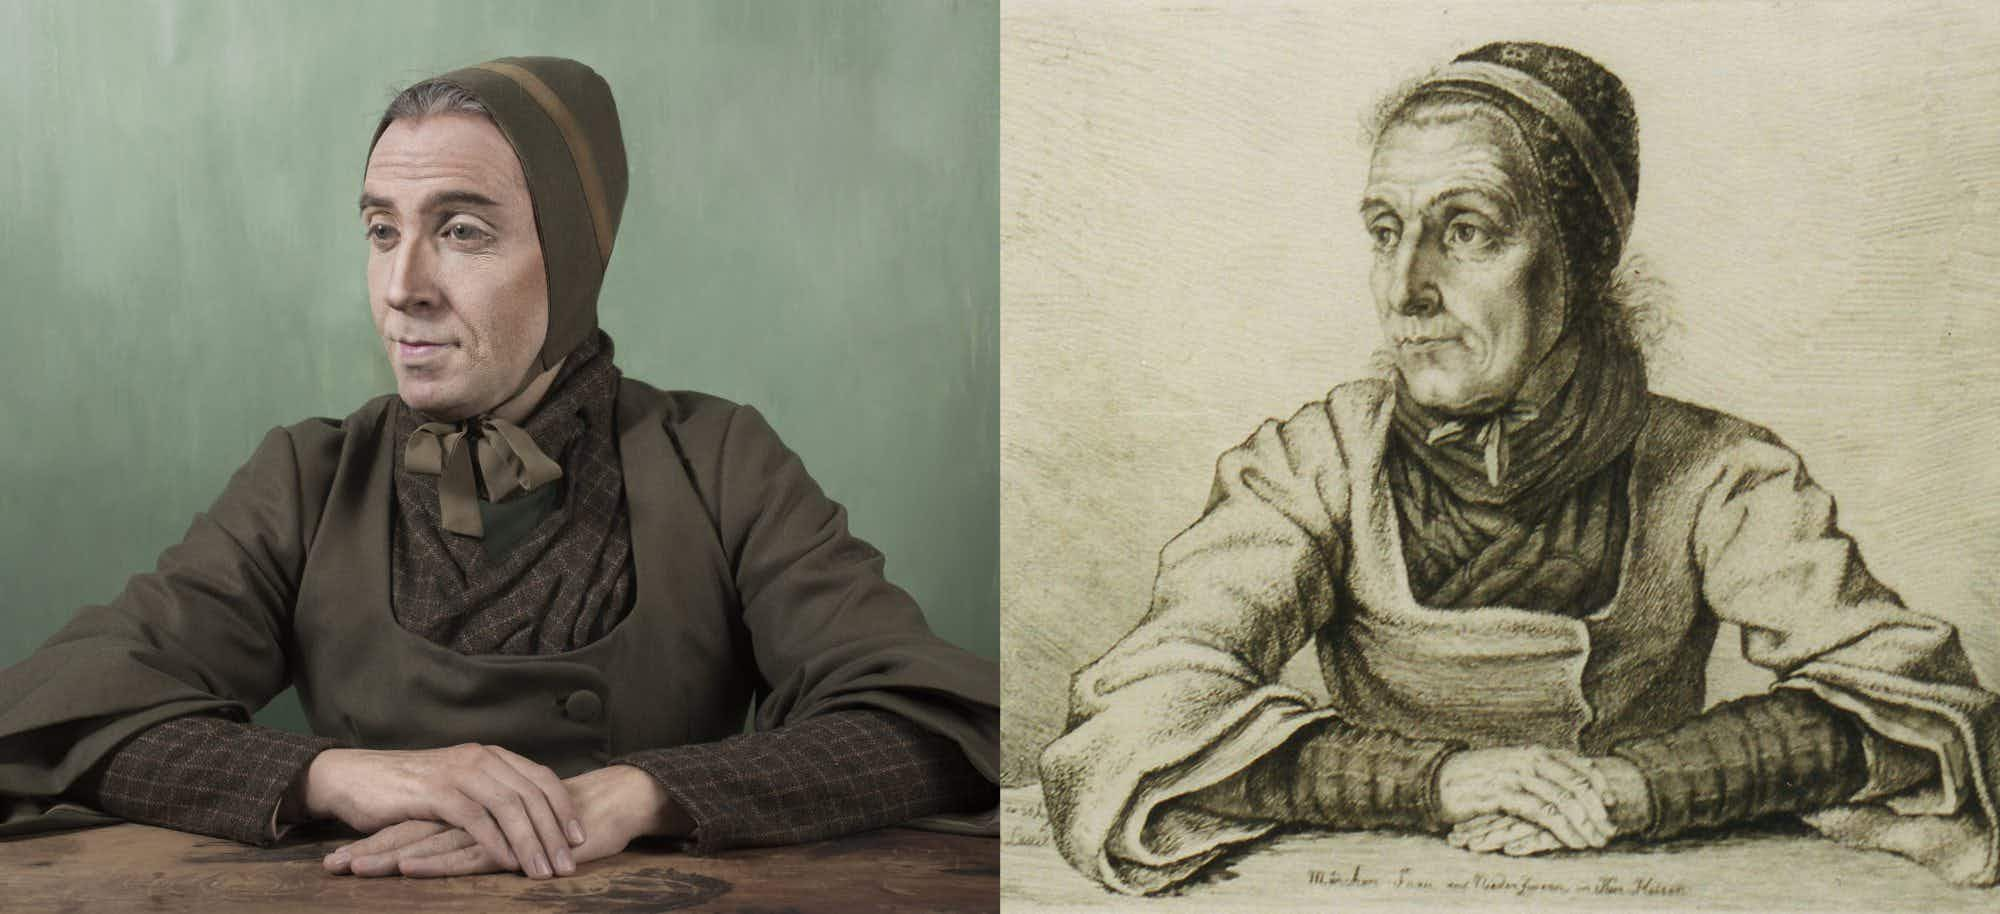 A Lima artist has gone viral for photographing himself looking like his ancestors